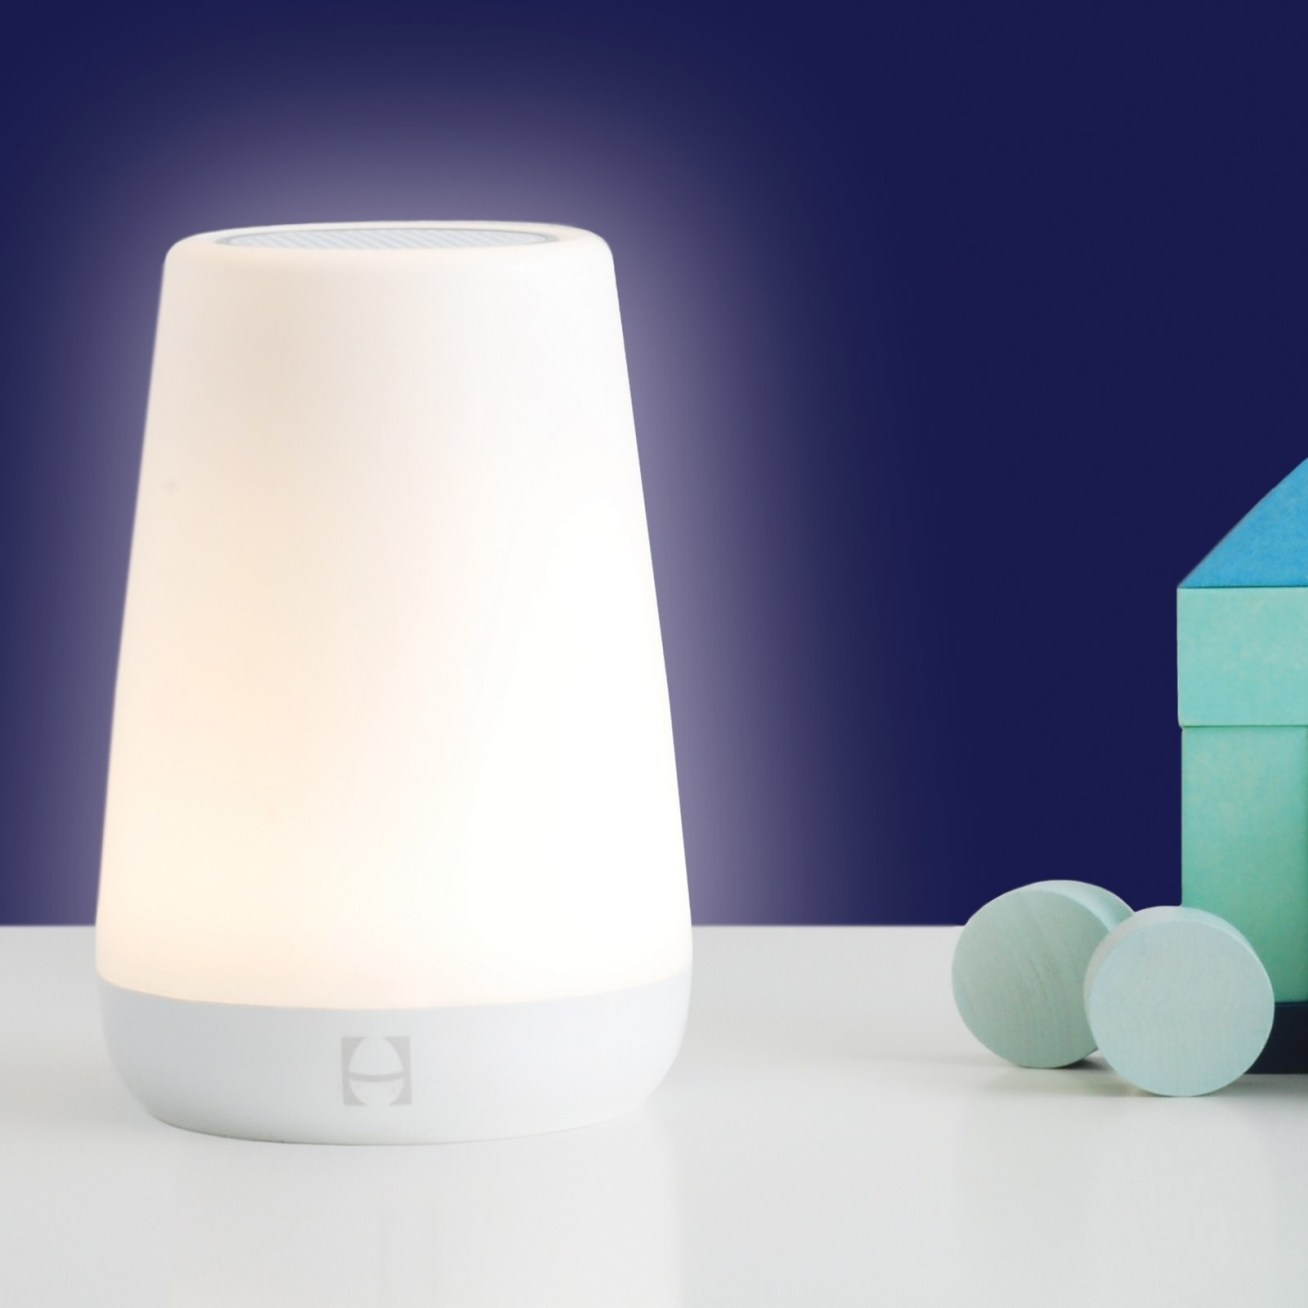 """And as they grow, you can use it as a night light and as a signal for when it's okay for them to get up in the morning. It has several preset color combinations, or you can customize the color and brightness. Promising review: """"Love this, couldn't wait to use it with my baby girl. It makes all the regular sound machine noises as well as lullaby music. And the nightlight features are so fun! This is something that you will be able to use for your child from infant onwards. It is very simple to control from the app on your phone as well. You can create """"schedules"""" of music and lights for certain times, etc. Very neat product and super easy to set up and use!"""" —IferGet it from Walmart for .99."""